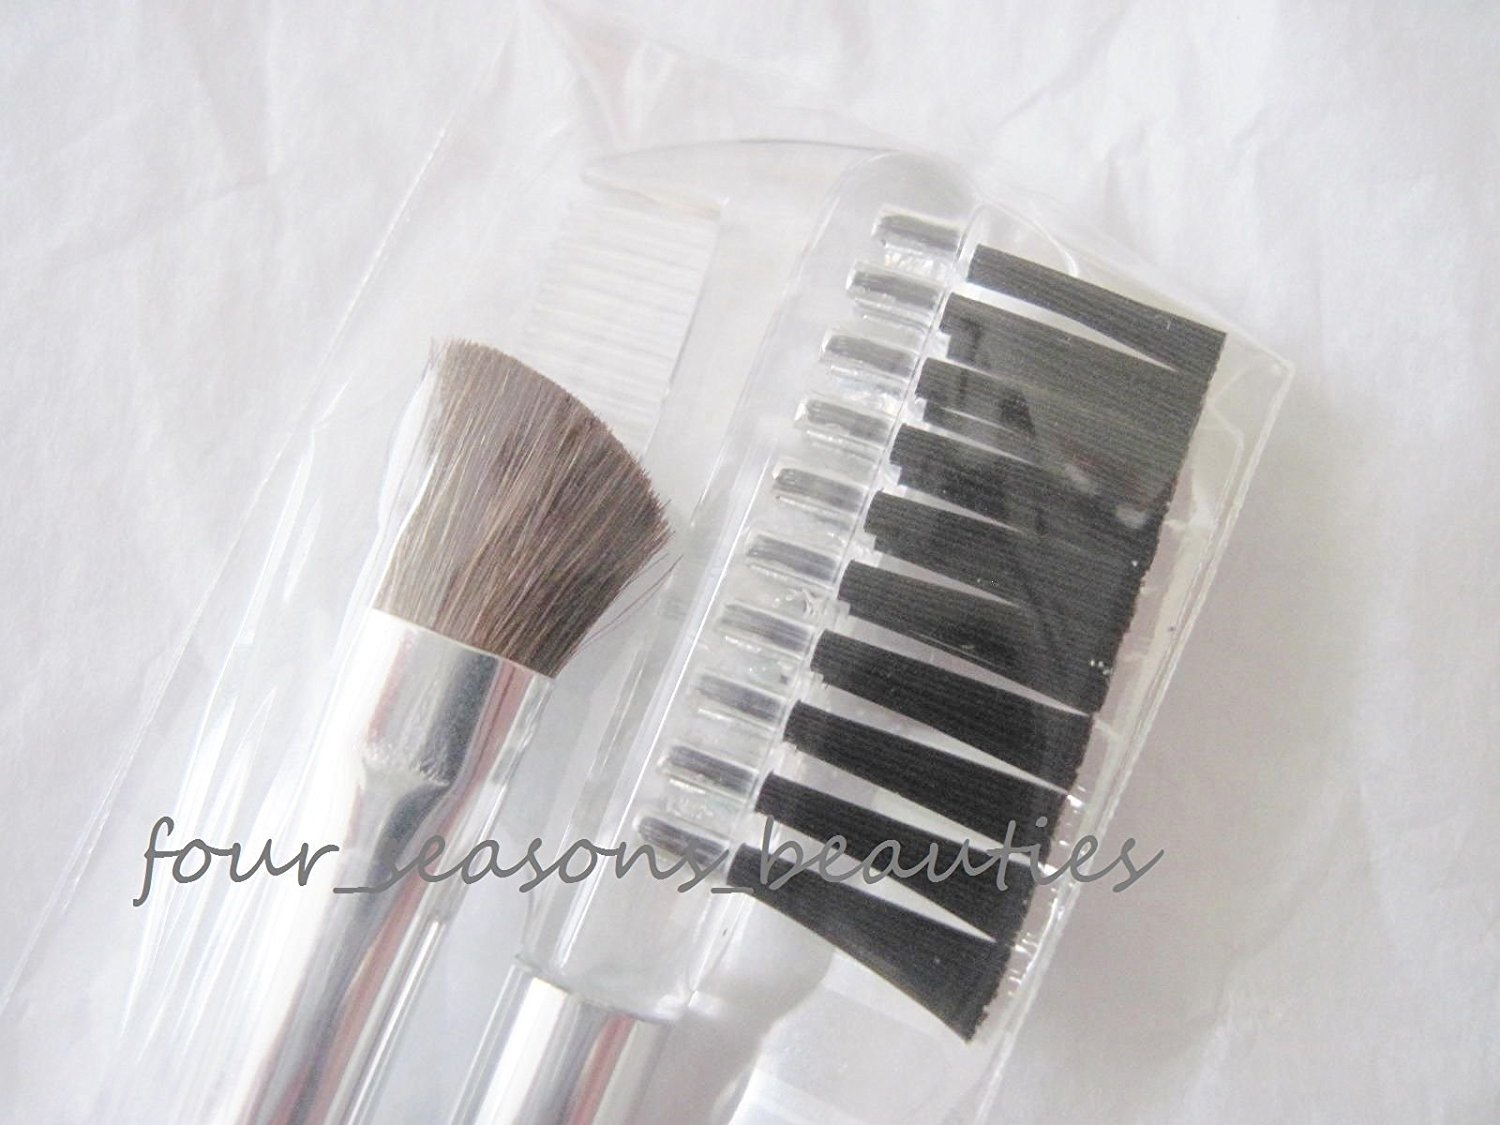 NEW 2-piece Clinique Eye Shadow & Brow Clear Brush Set 6 Long